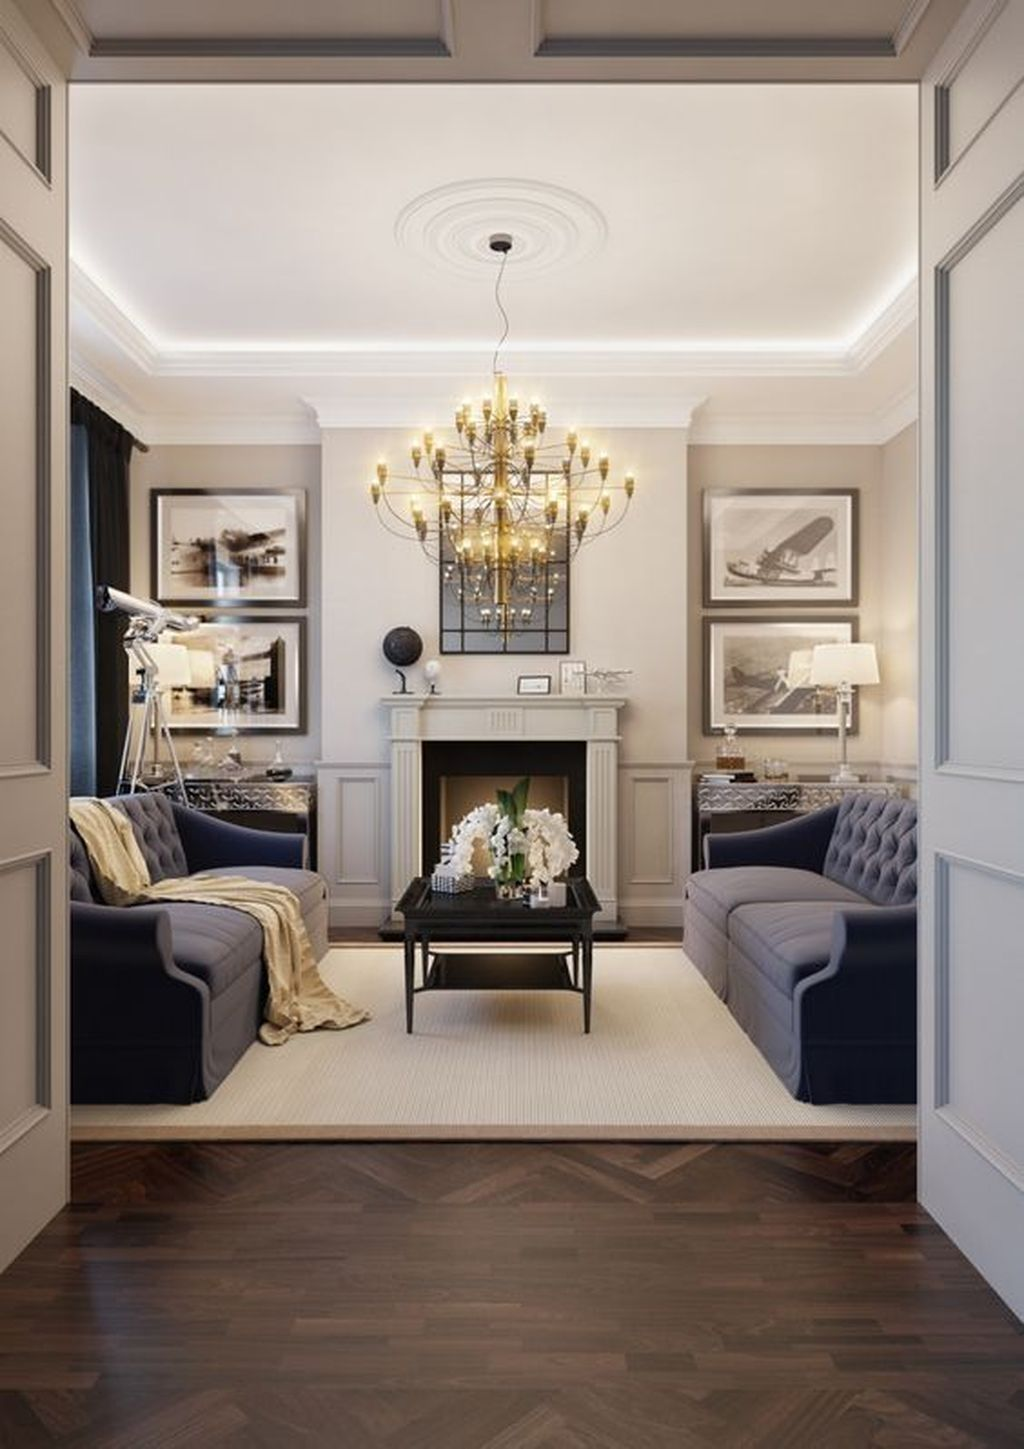 16+ Formal living room ideas traditional info